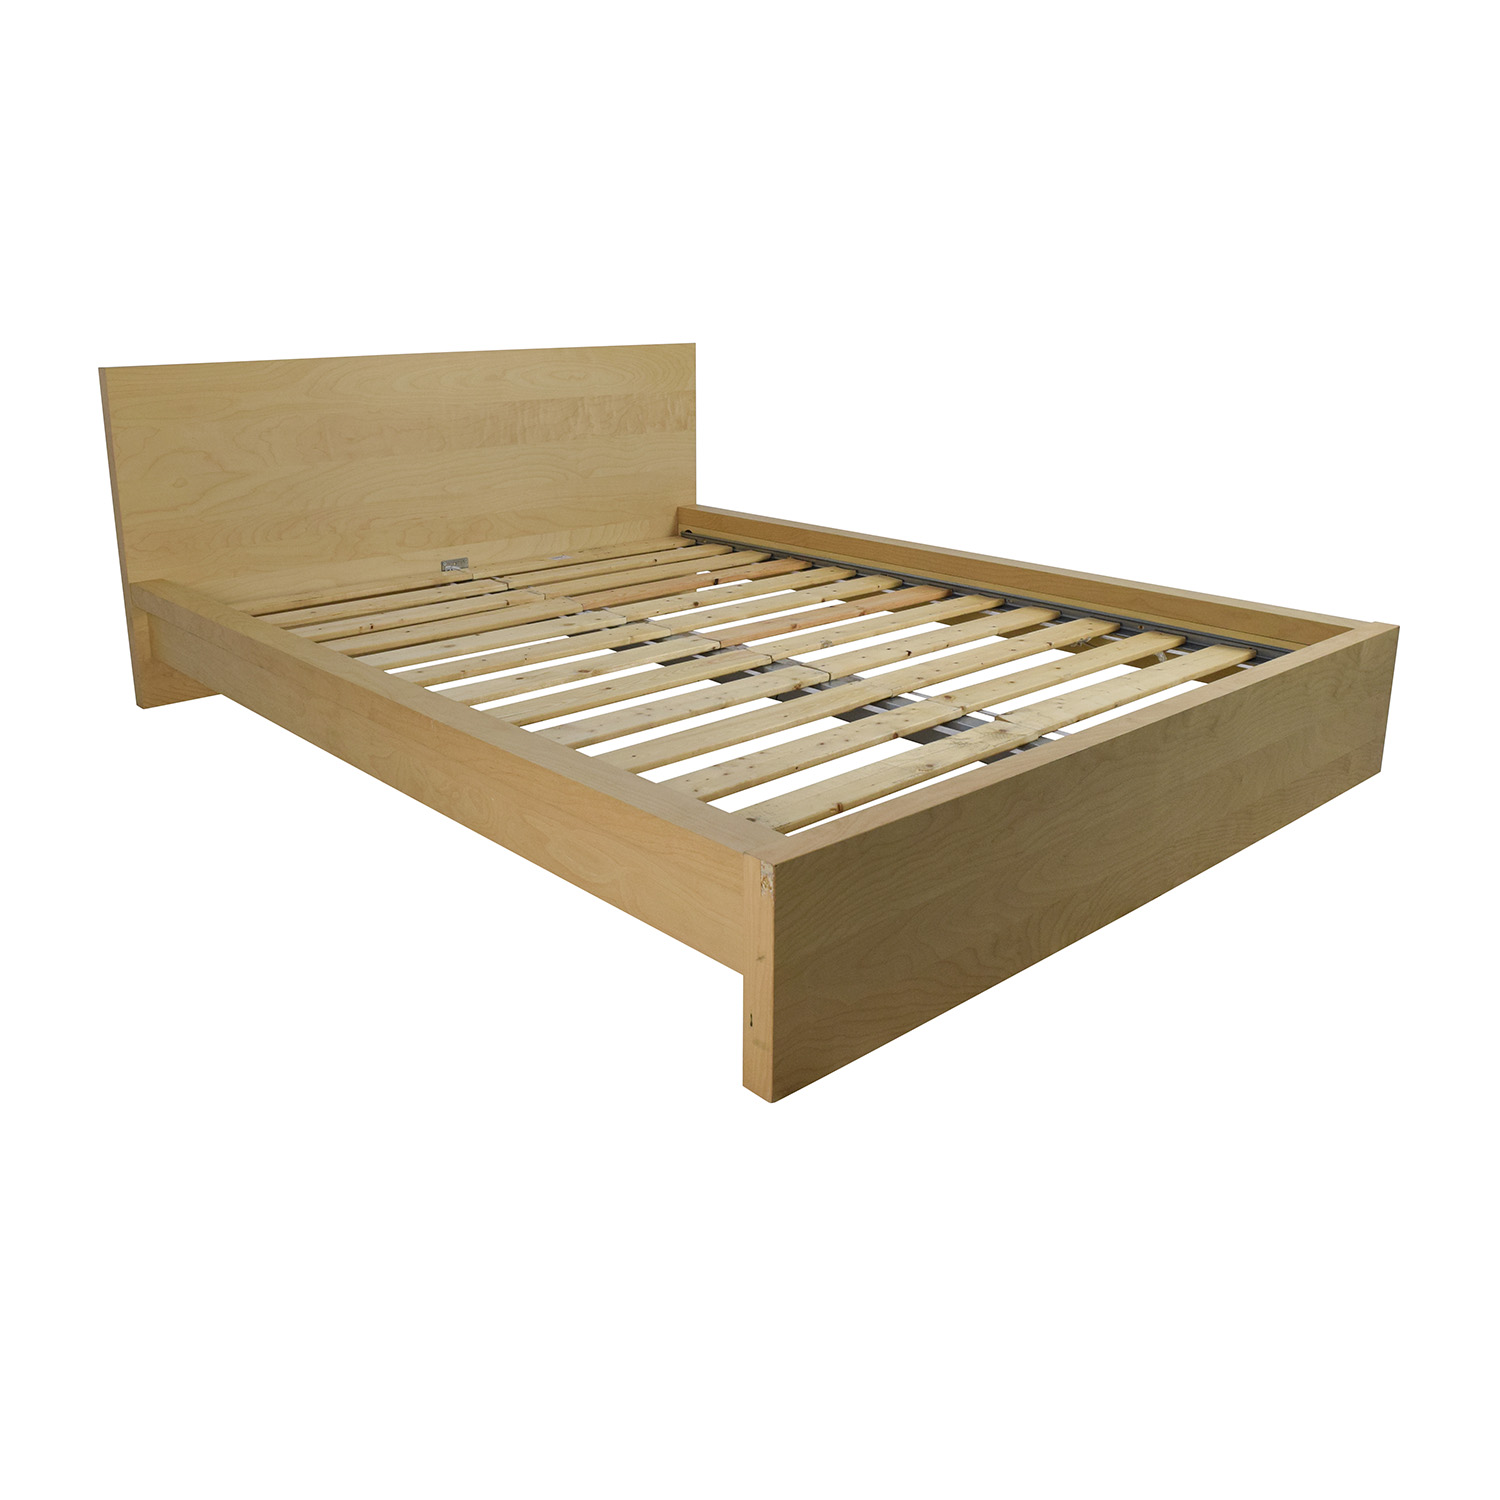 62 off ikea ikea sultan queen bed frame beds for Ikea mattress frame